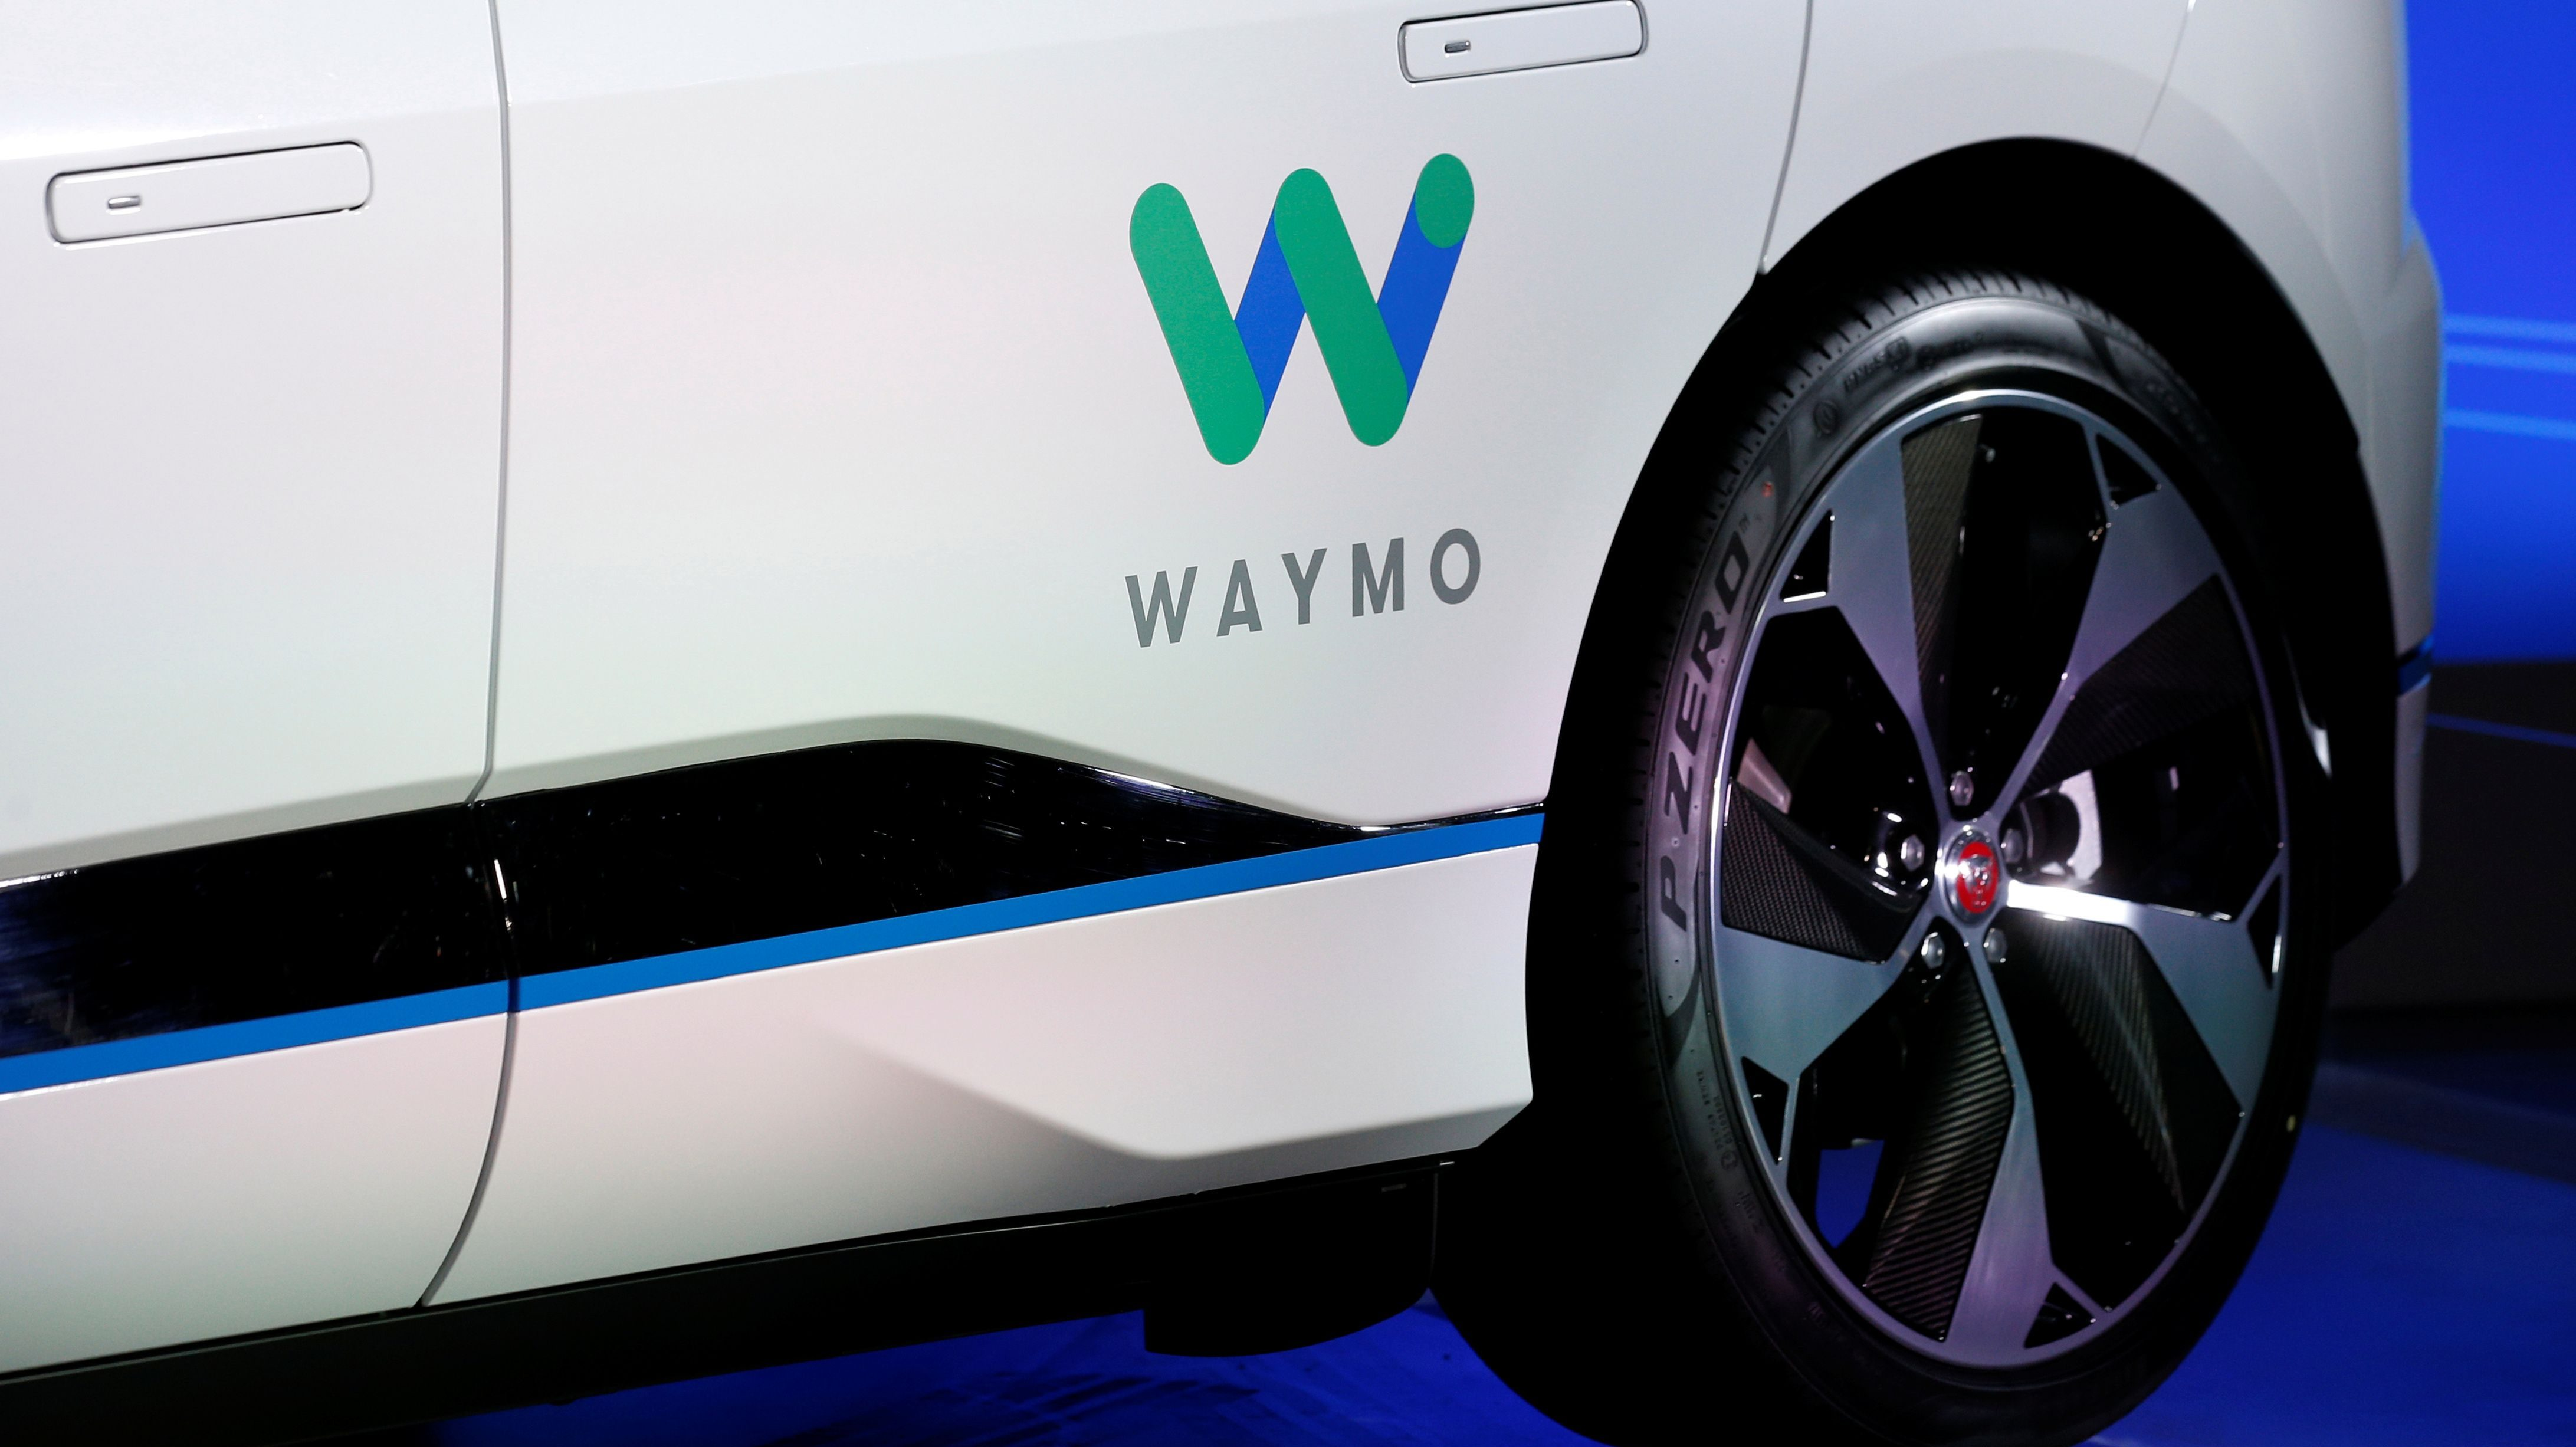 A Jaguar I-PACE self-driving car is pictured during its unveiling by Waymo in the Manhattan borough of New York City, U.S., March 27, 2018. REUTERS/Brendan McDermid - RC1D2FC945B0